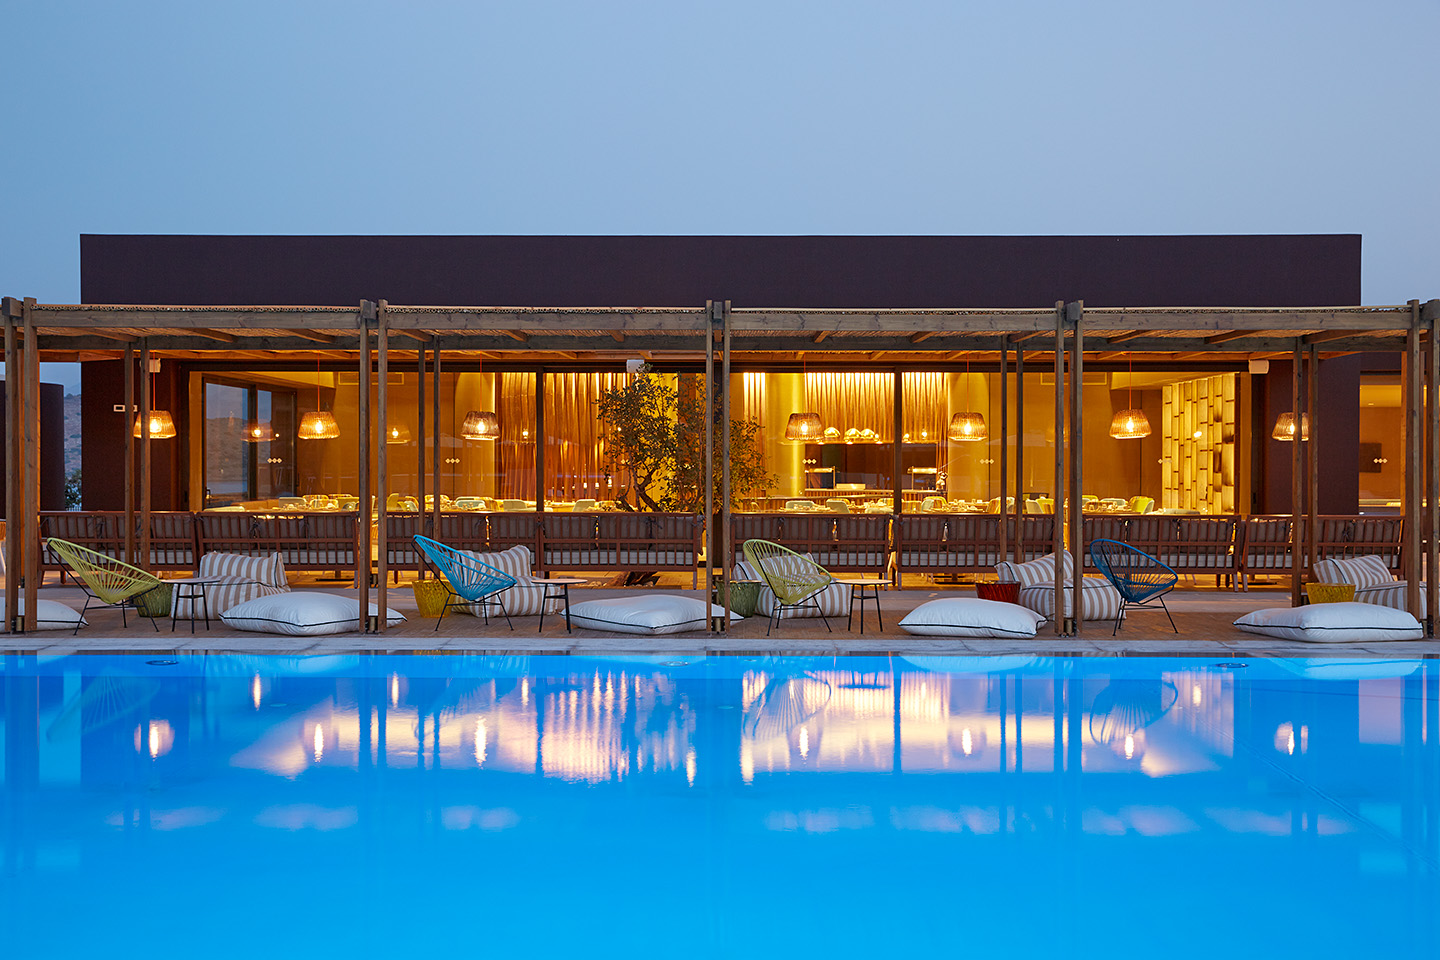 Marriott Autograph Collection hotels, like the Domes of Elounda in Greece, are included brands in the Marriott Bonvoy Travel Rewards Program.